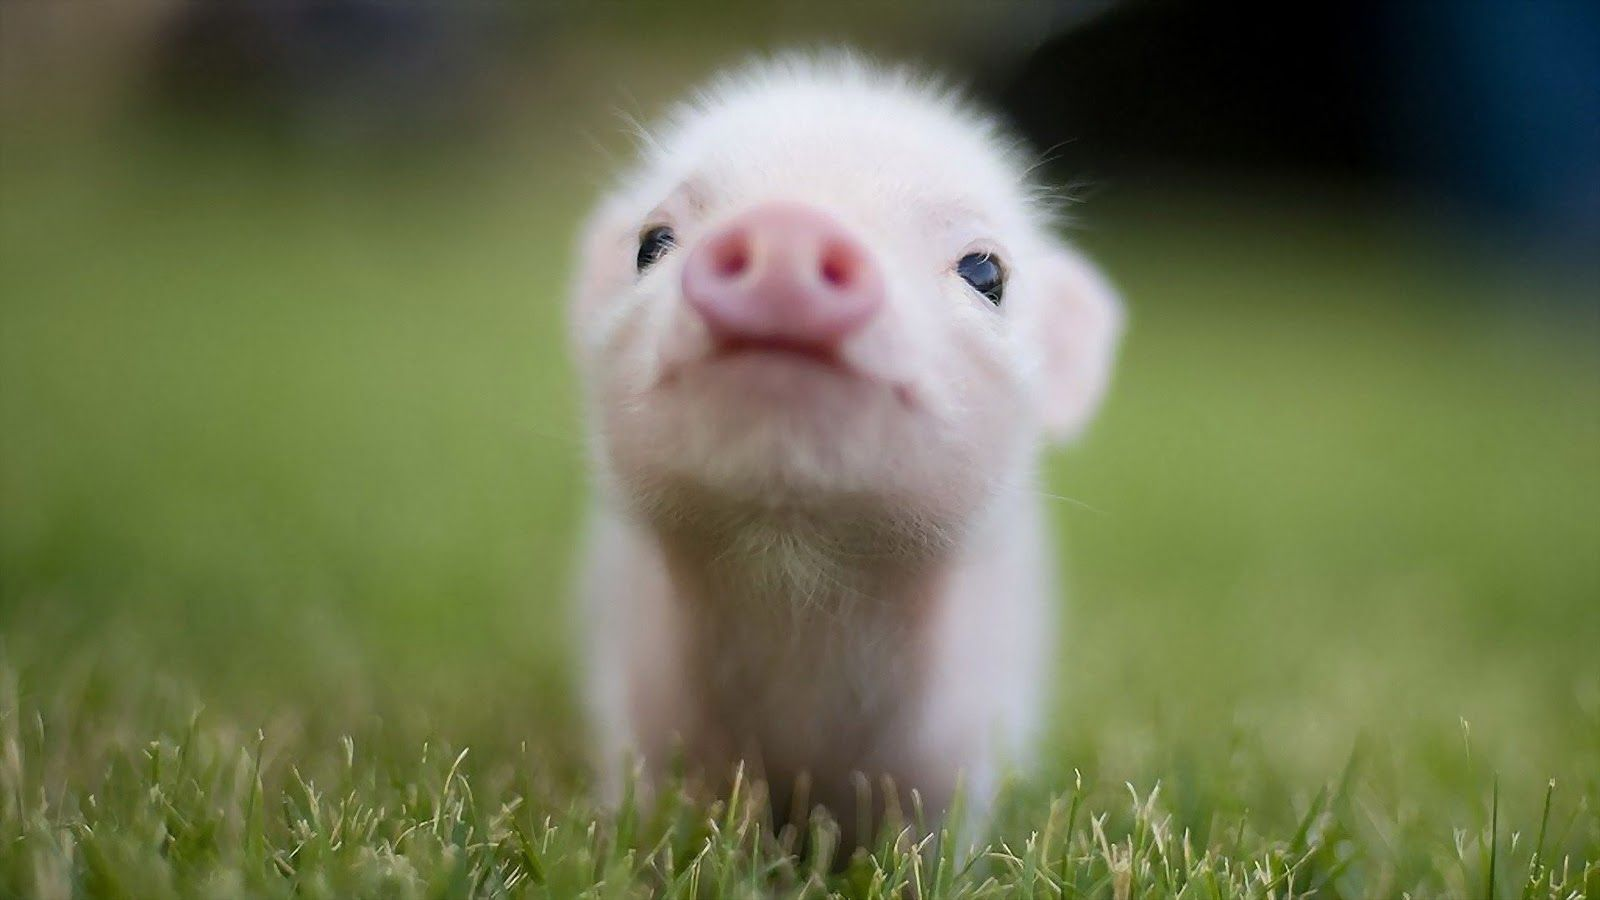 Pig Wallpapers   Top Pig Backgrounds   WallpaperAccess 1600x900